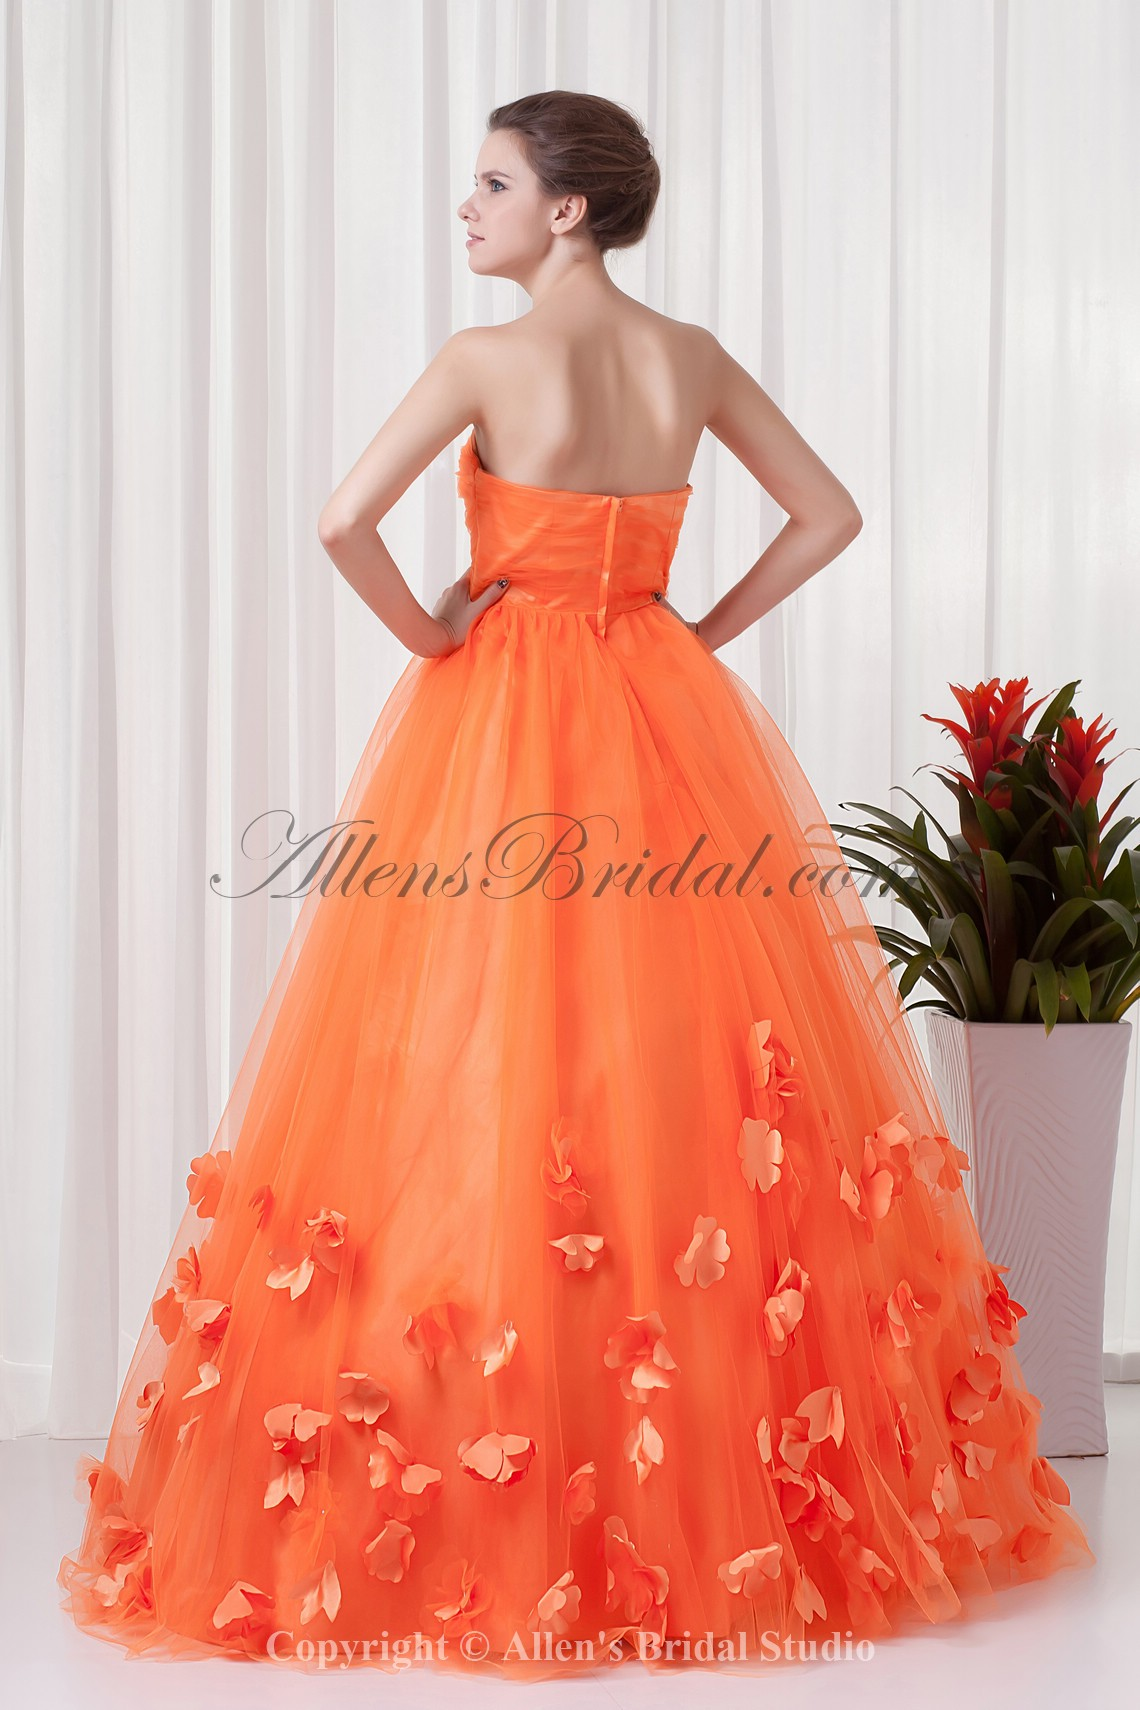 /311-2486/satin-and-net-strapless-ball-gown-floor-length-applique-prom-dress.jpg